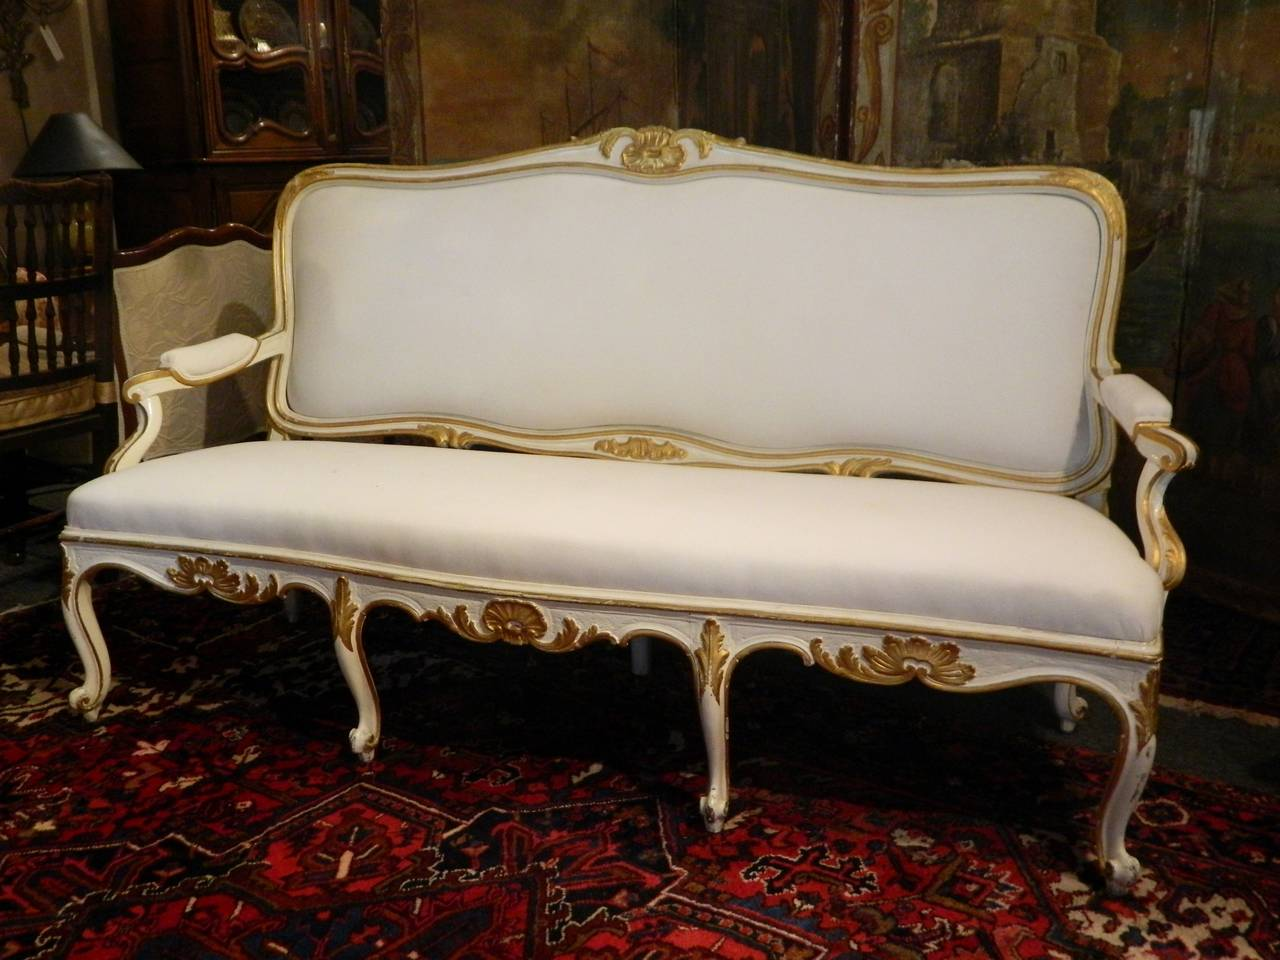 Swedish Gustavian Painted and Parcel Gilt Canape or Sofa, 19th Century For Sale